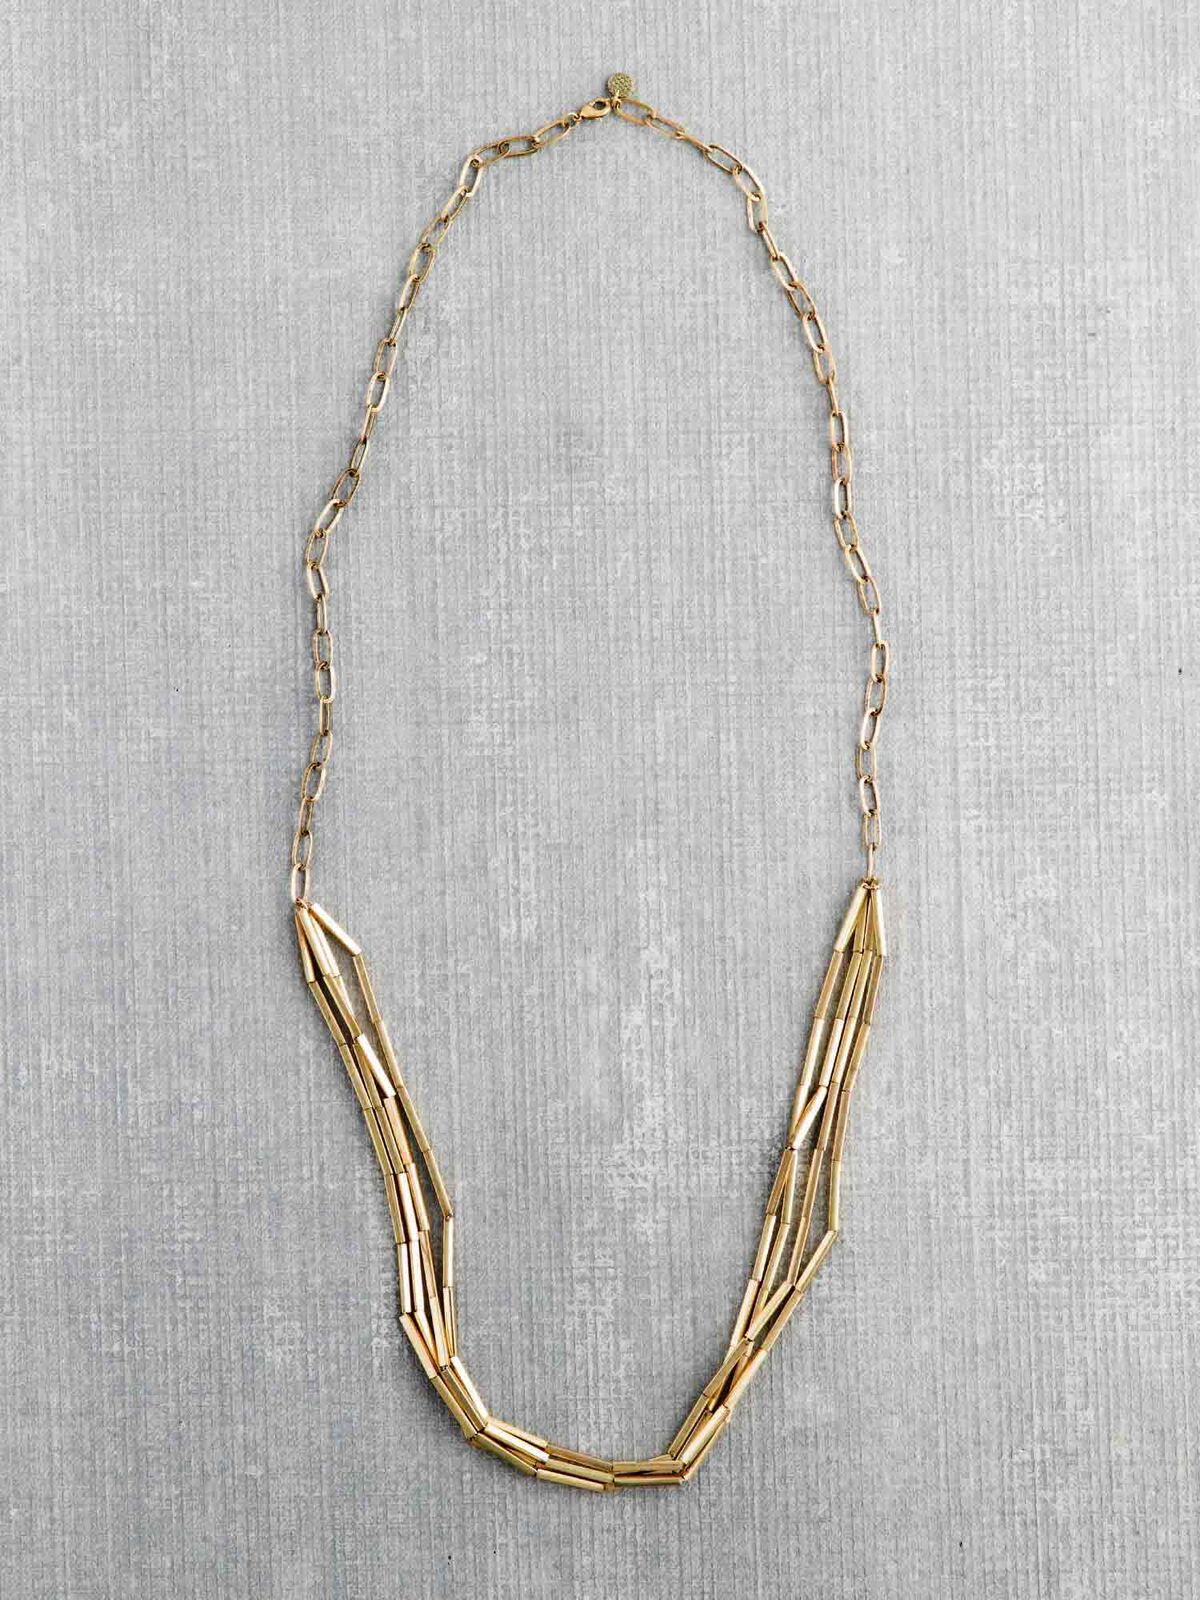 Marlyn Schiff Gold Link Necklace